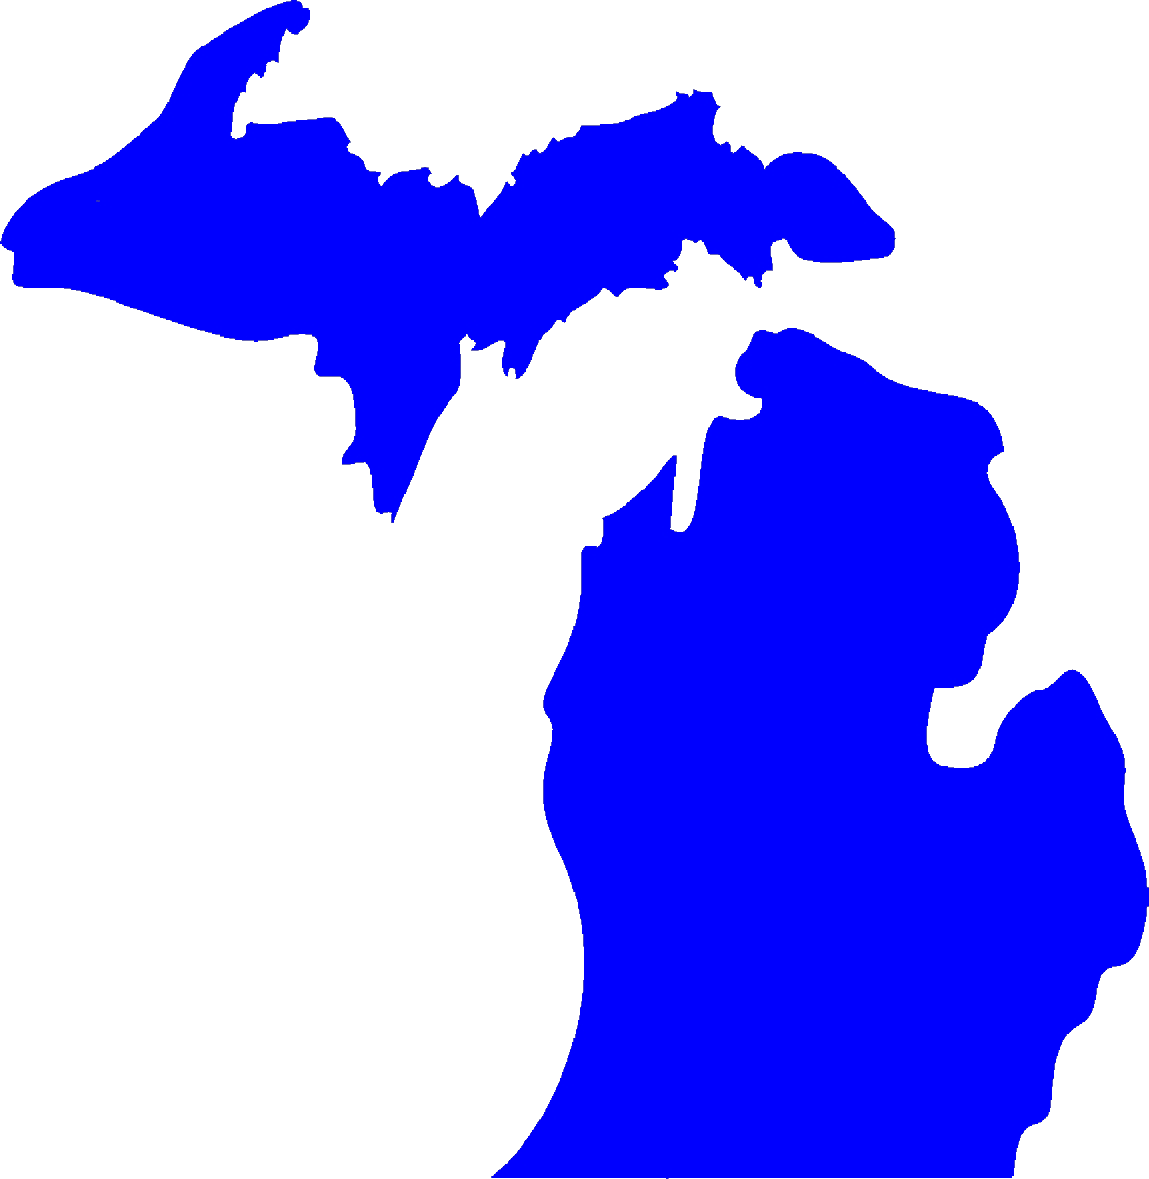 Image of the State of Michigan